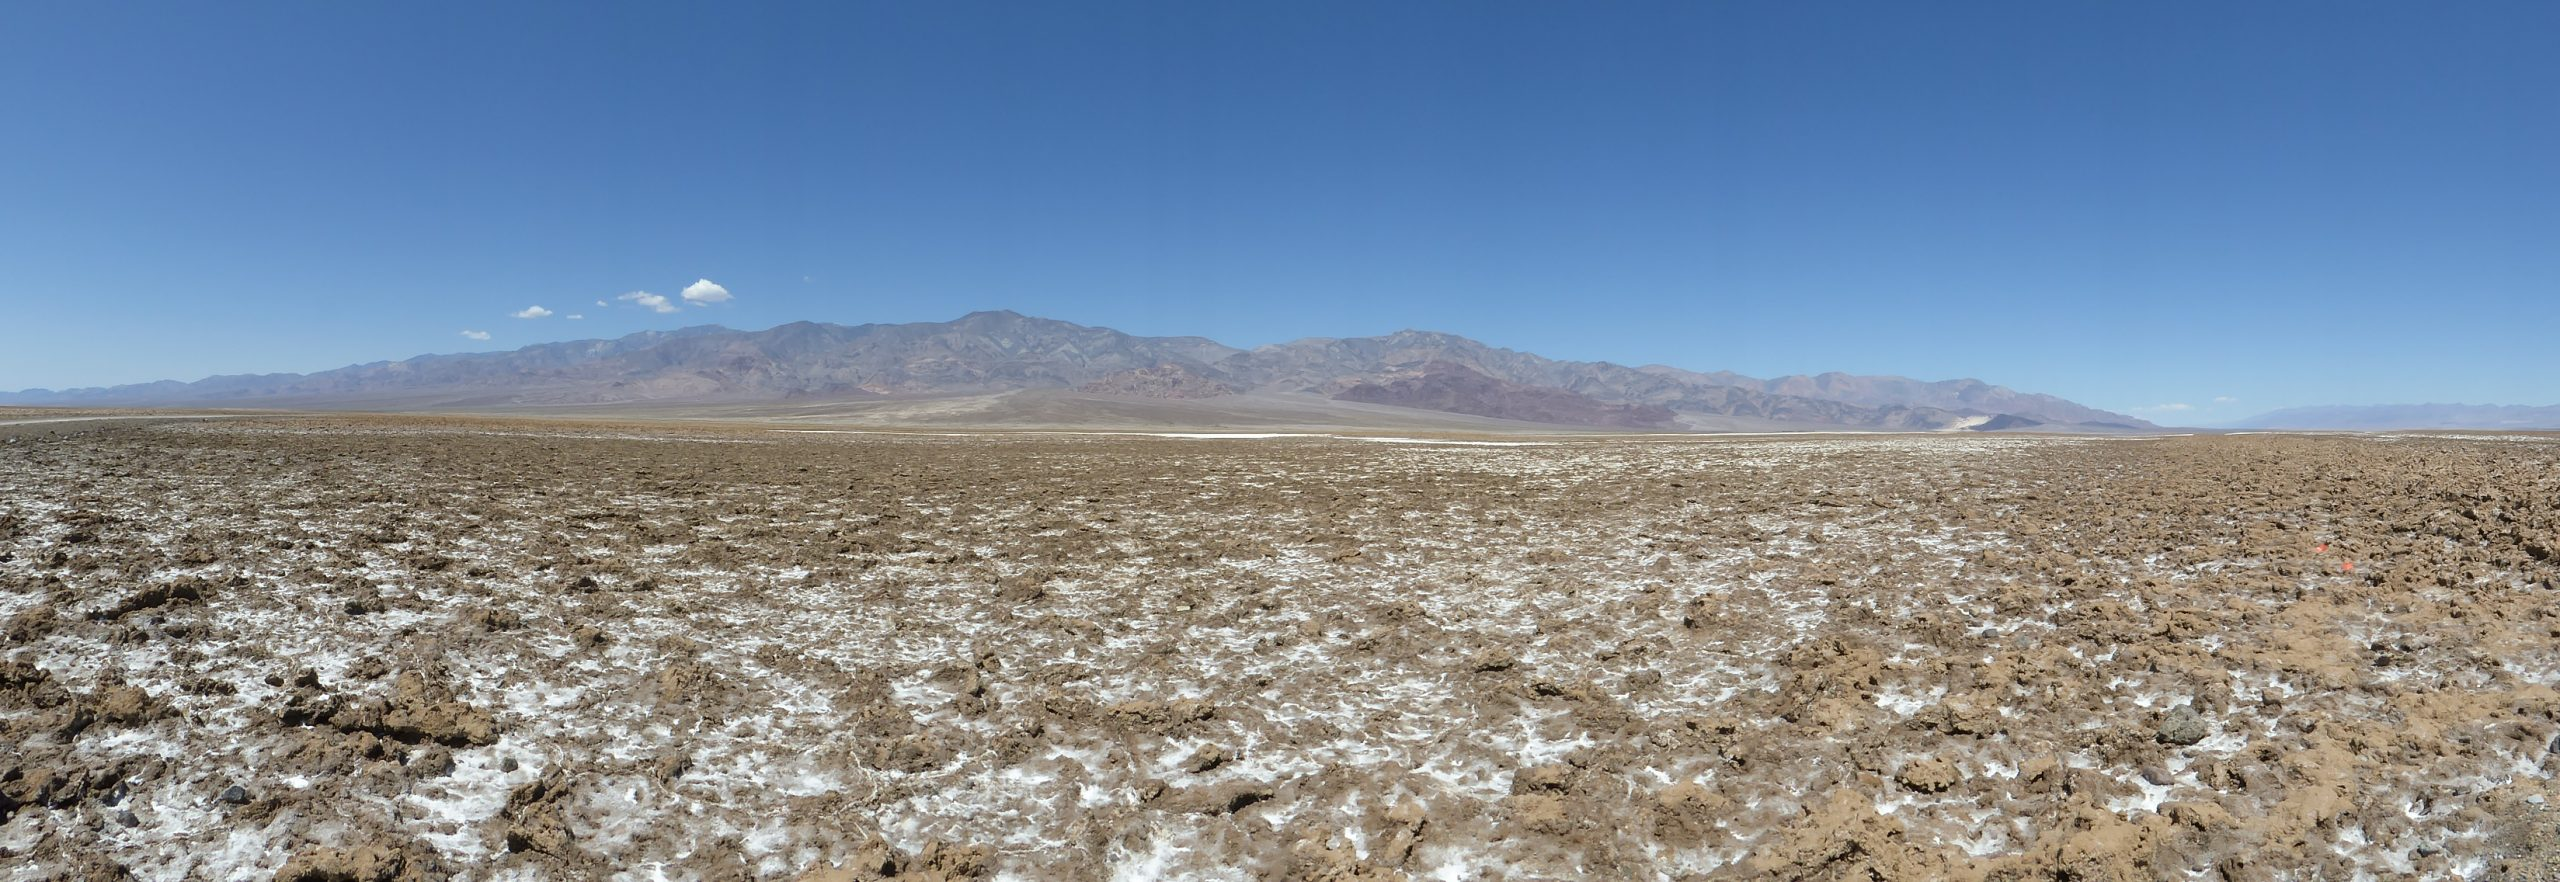 Panorama of Death Valley Icy Moon Analog Terrain